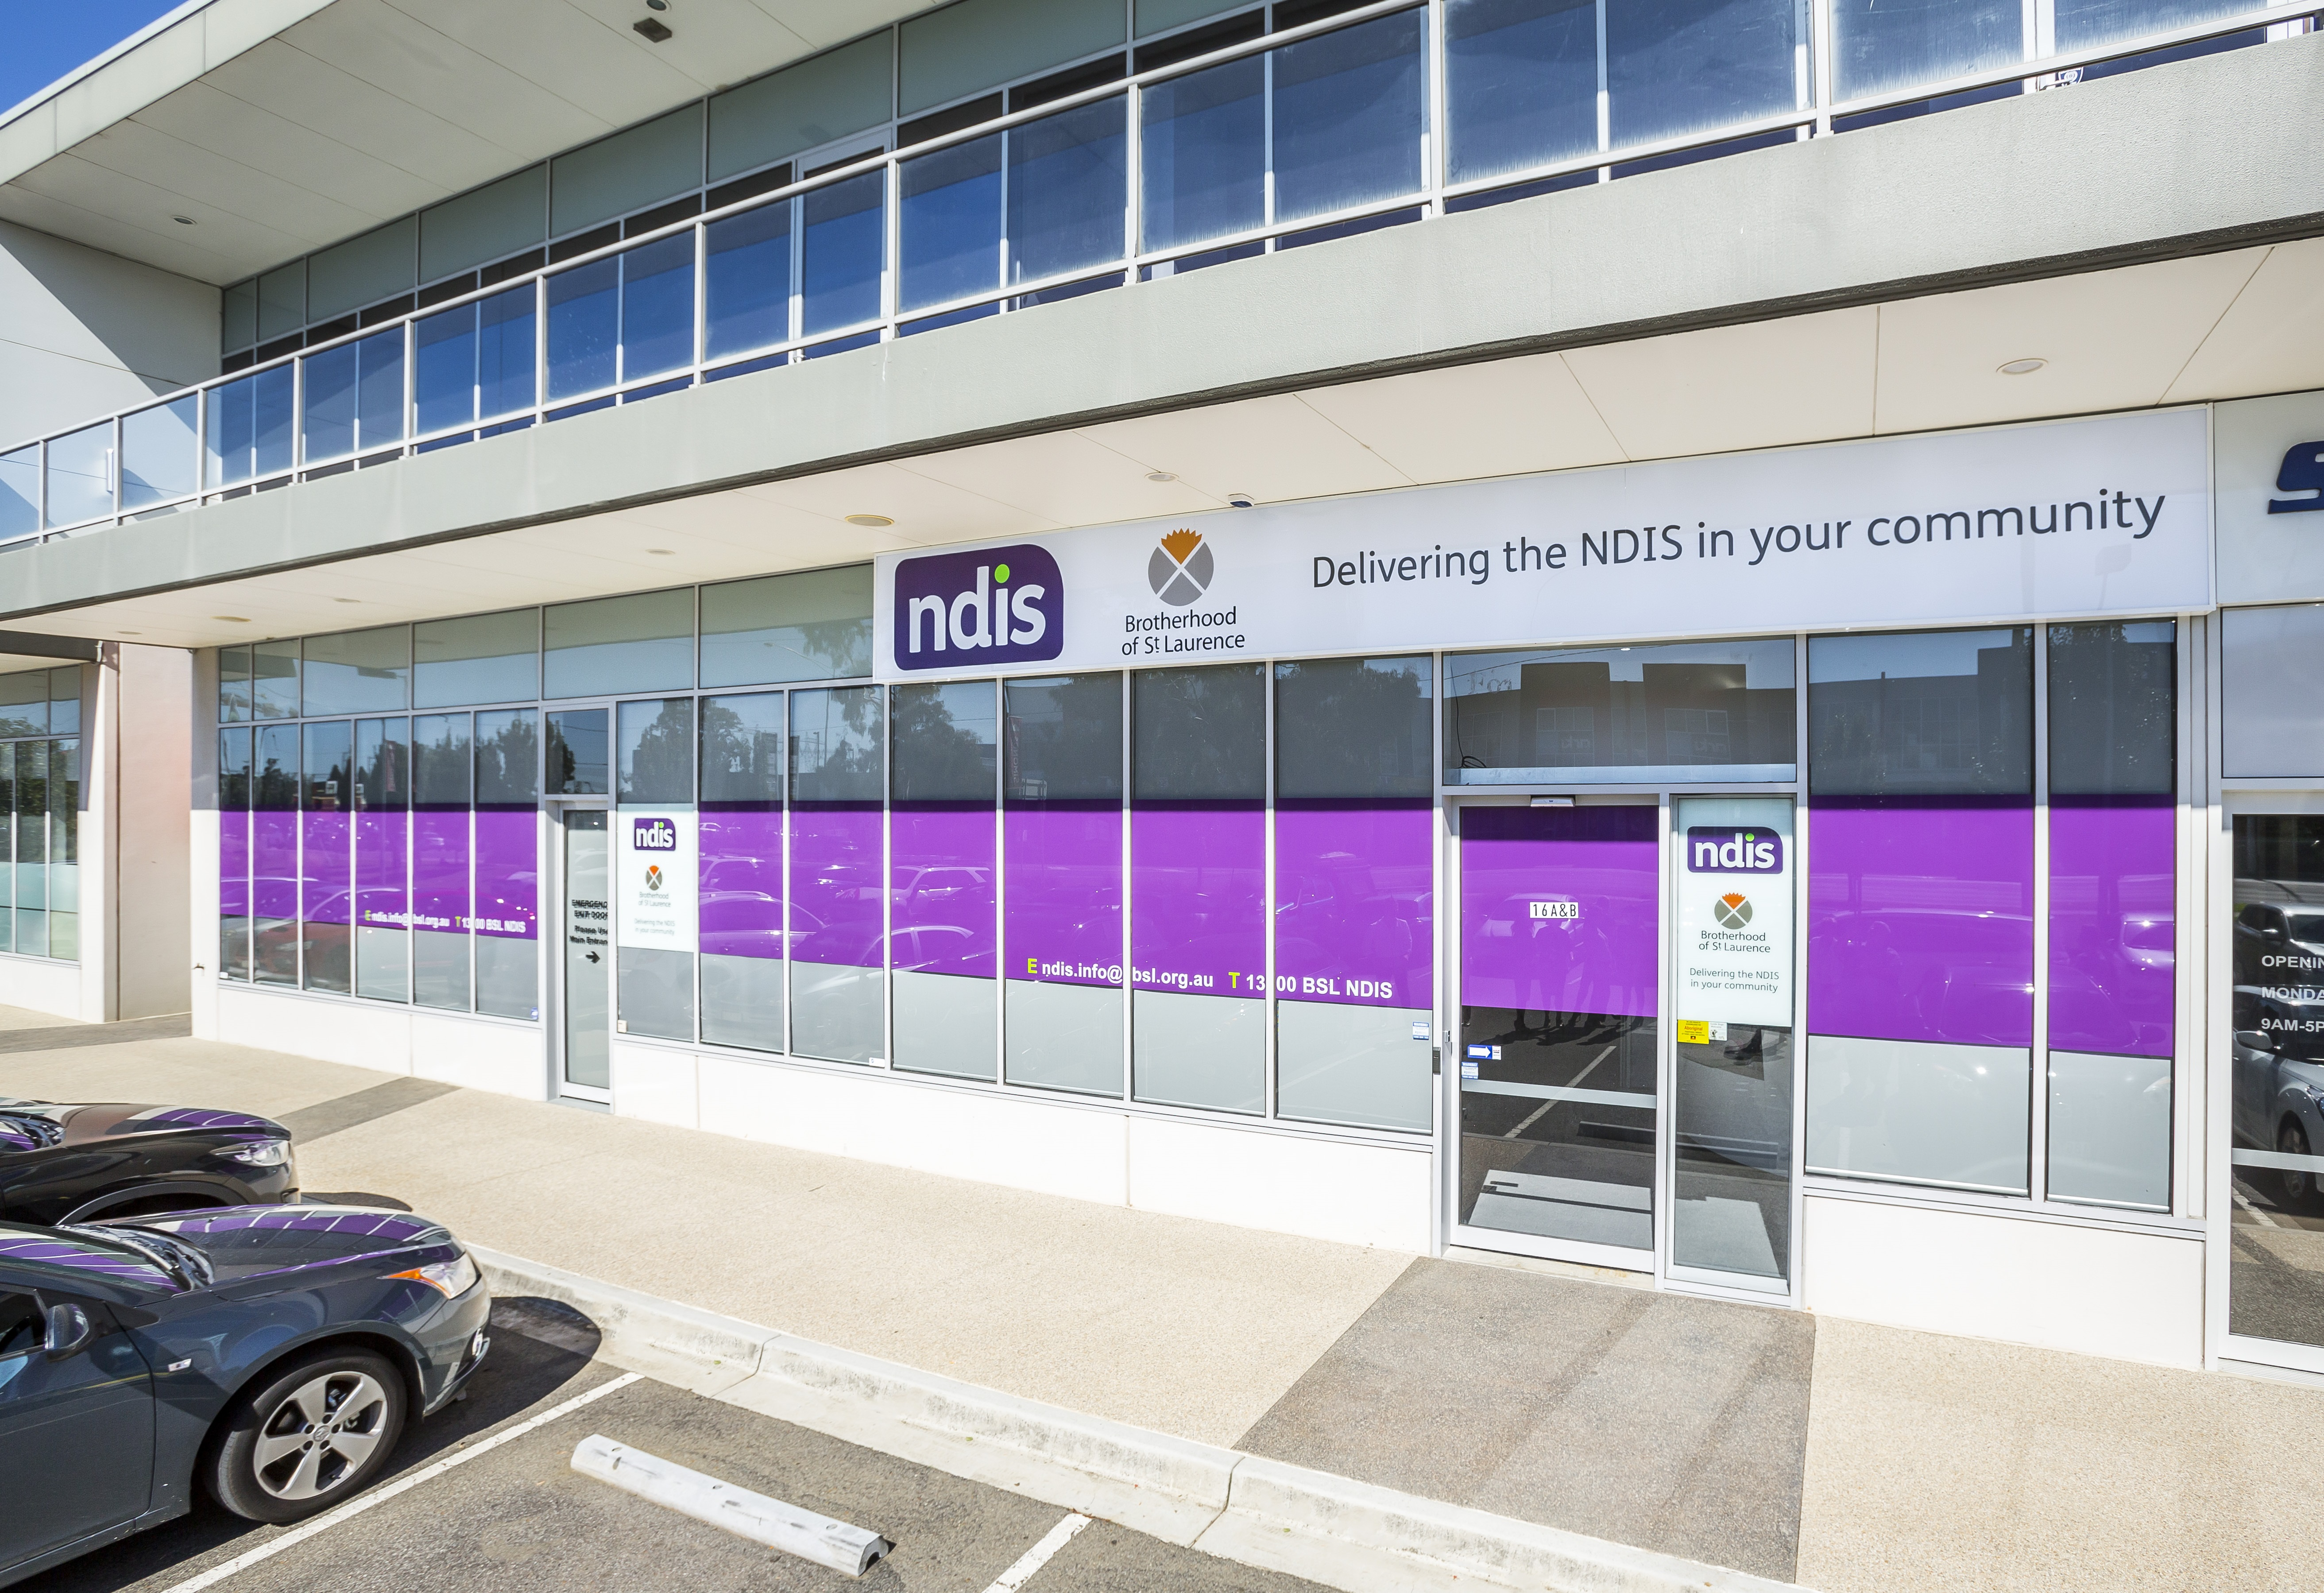 Image showing entrance to a Brotherhood NDIS office